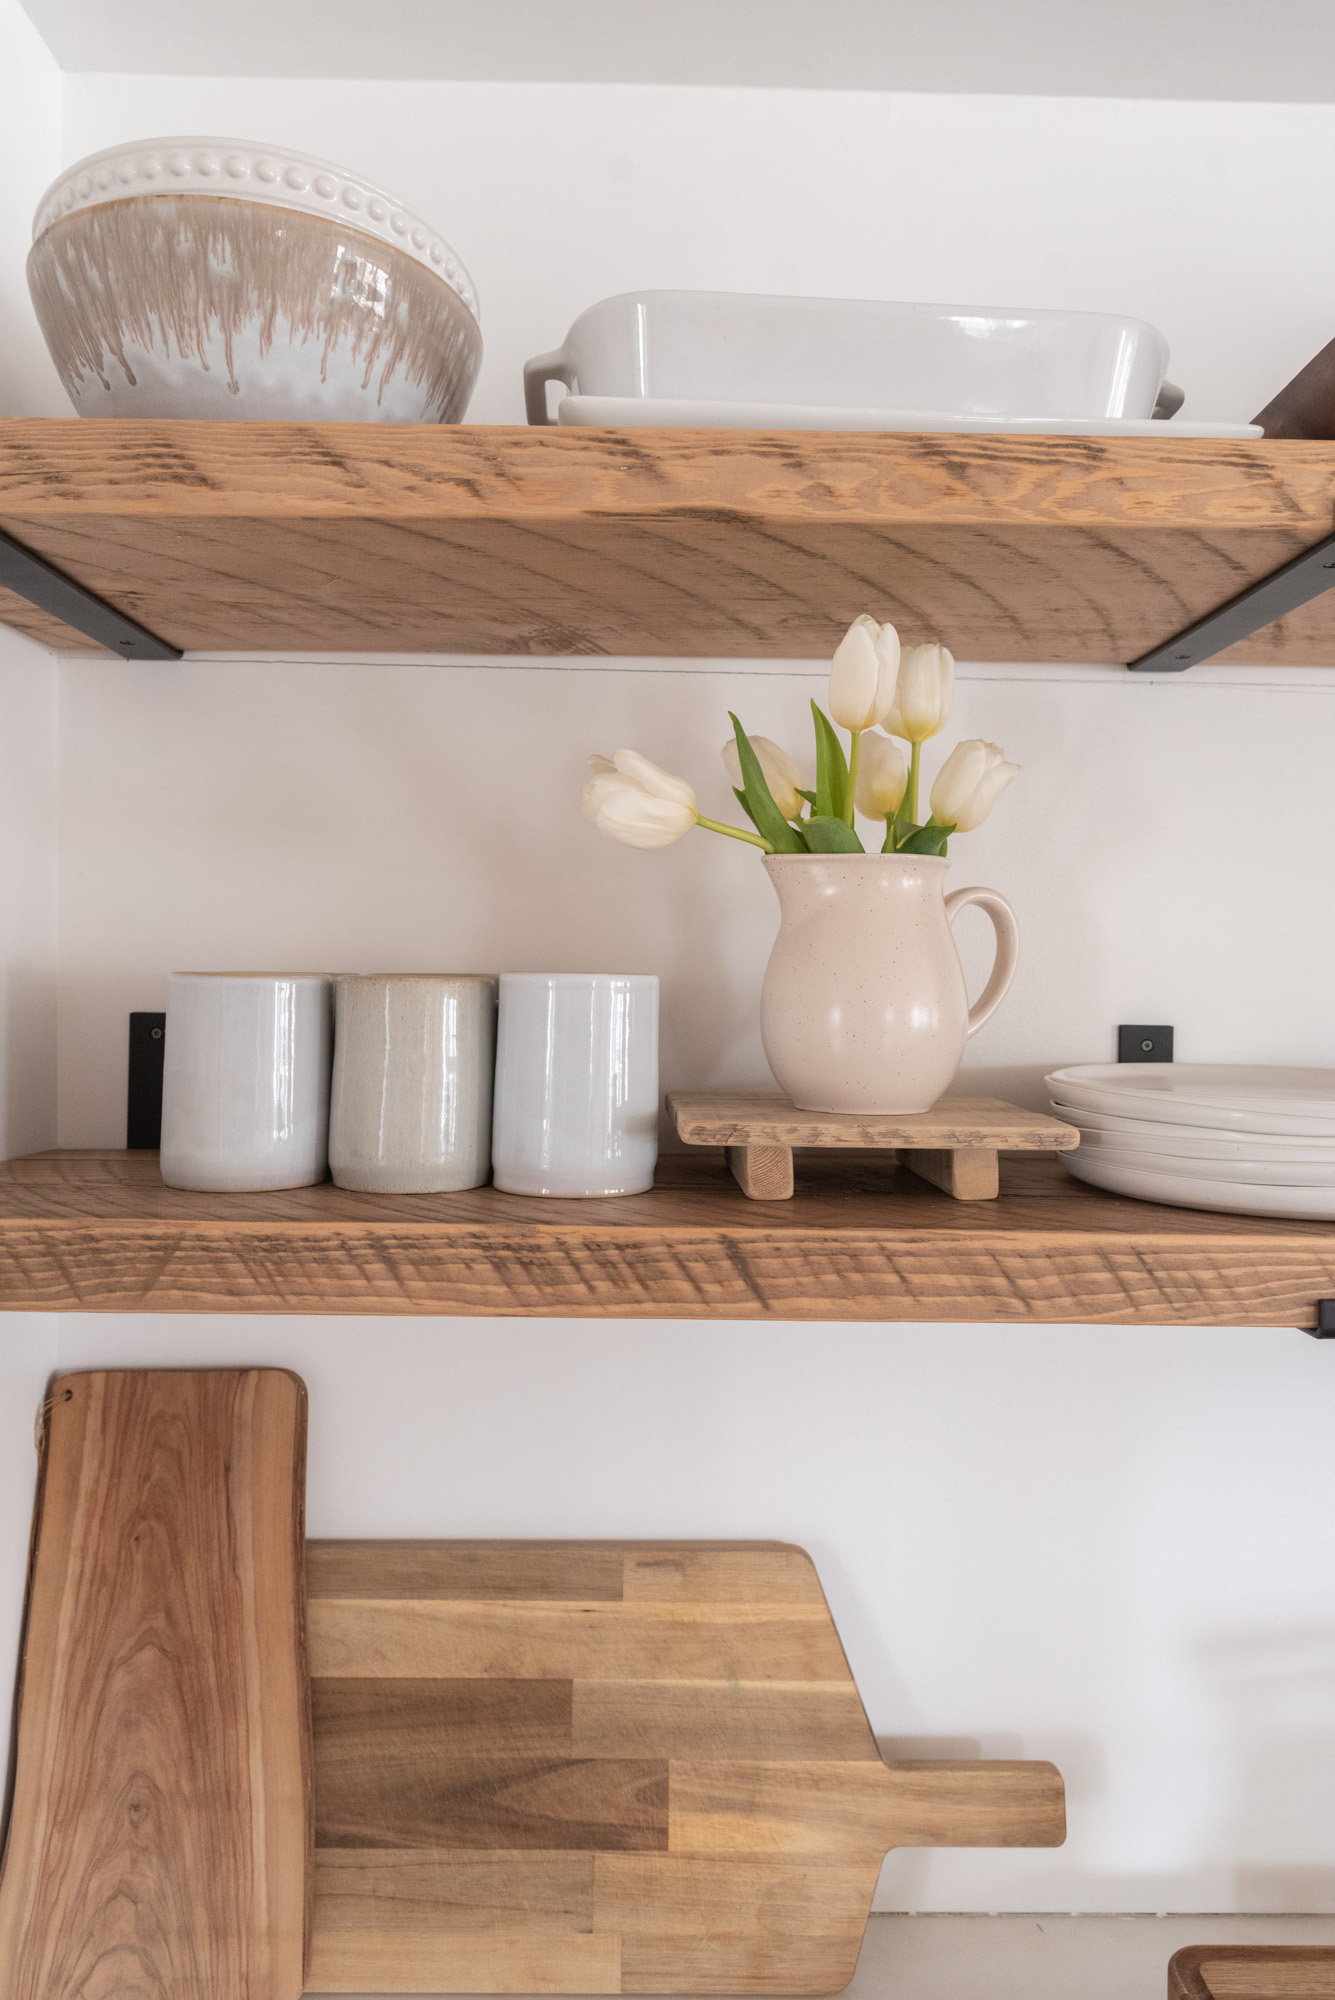 The Wild Decoelis | Kitchen shelves rough sawn with black iron brackets minimal reclaimed wood and white ceramics. tulips on stand